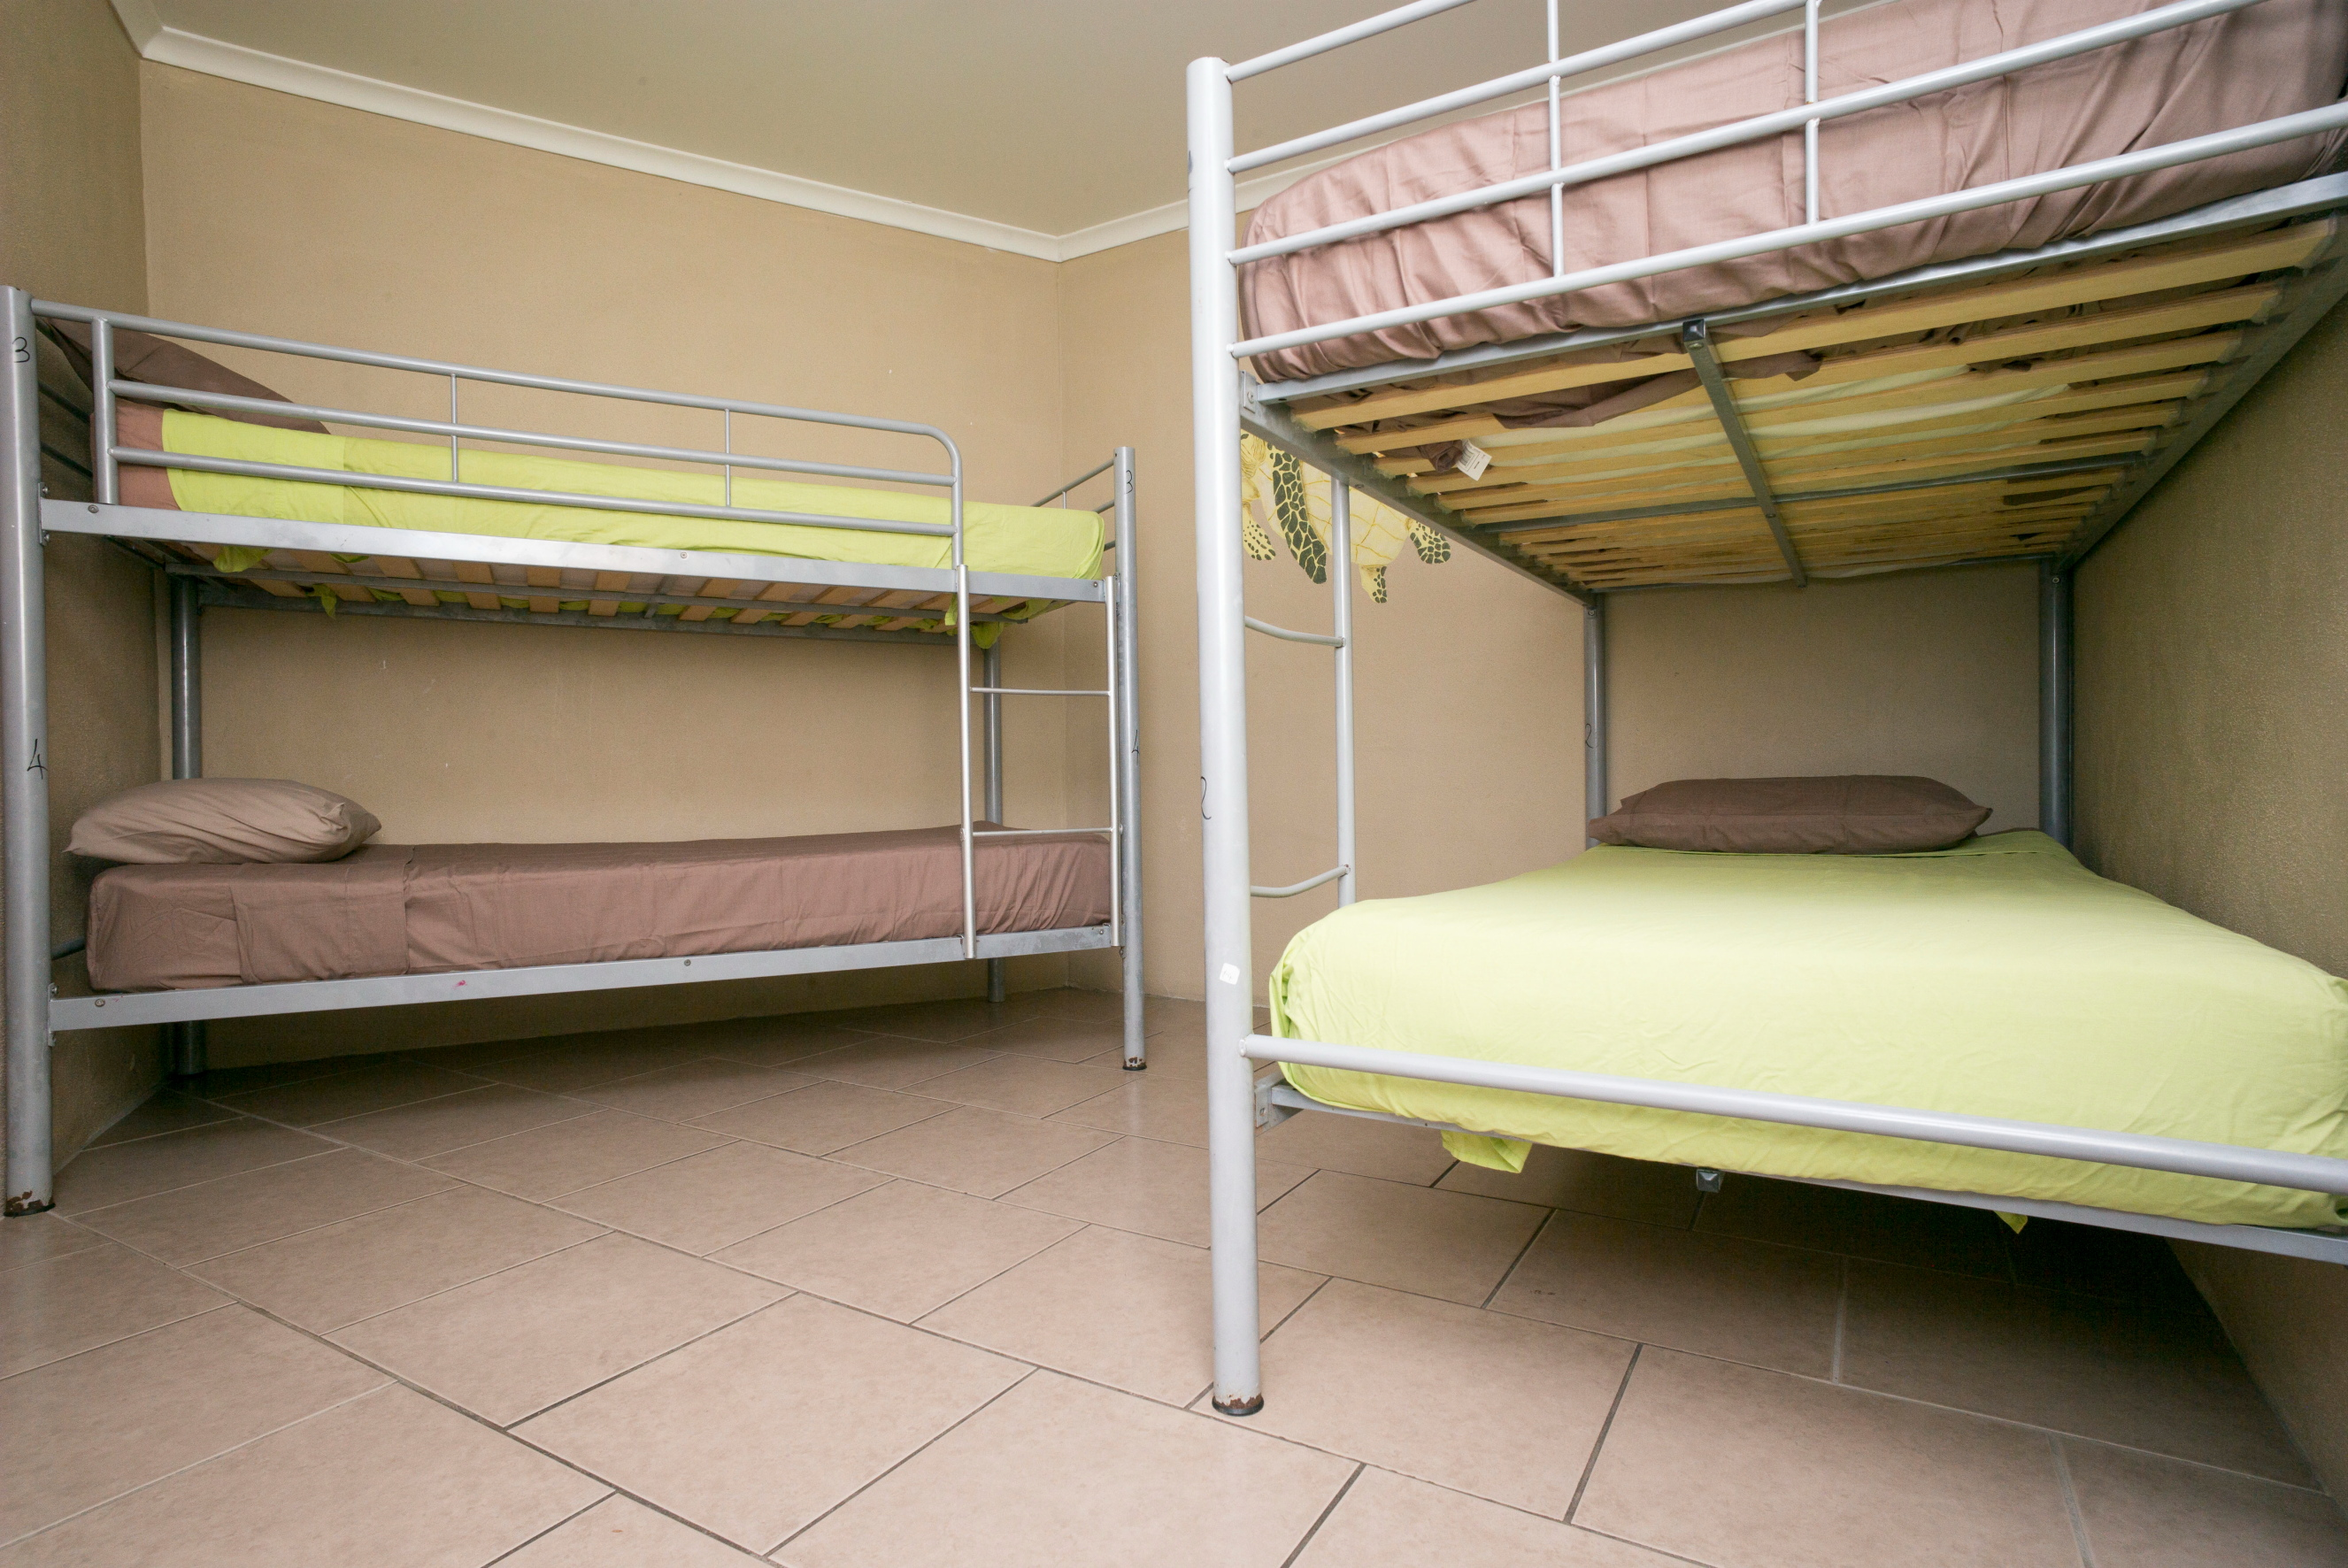 4 BED MIXED DORM WITH ENSUITE